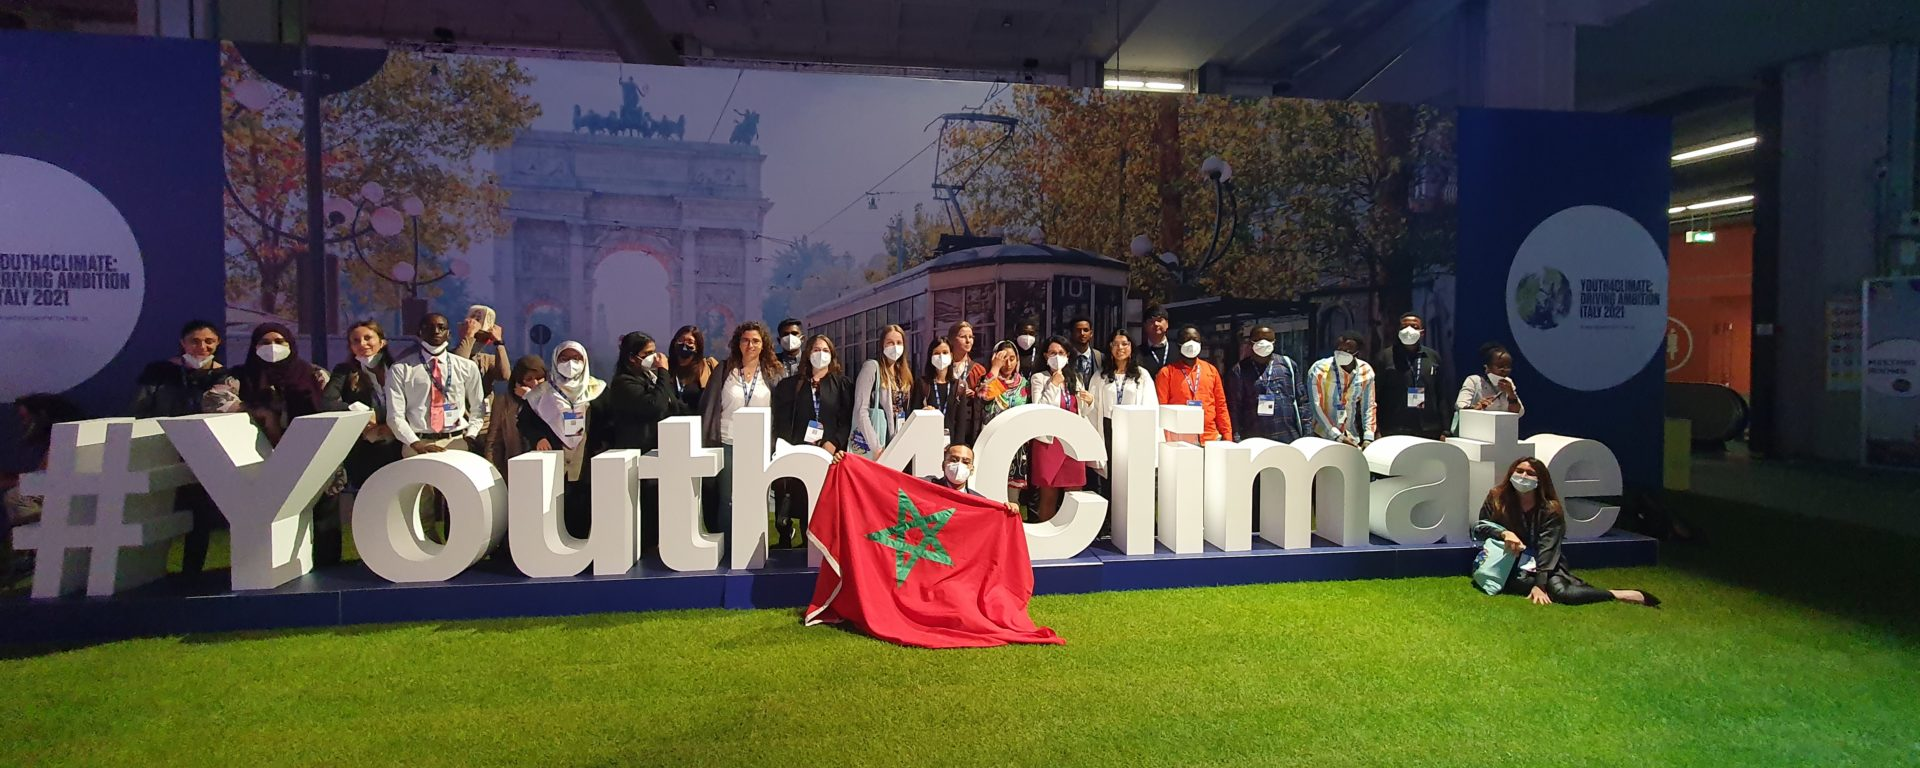 YOUTH 4 CLIMATE